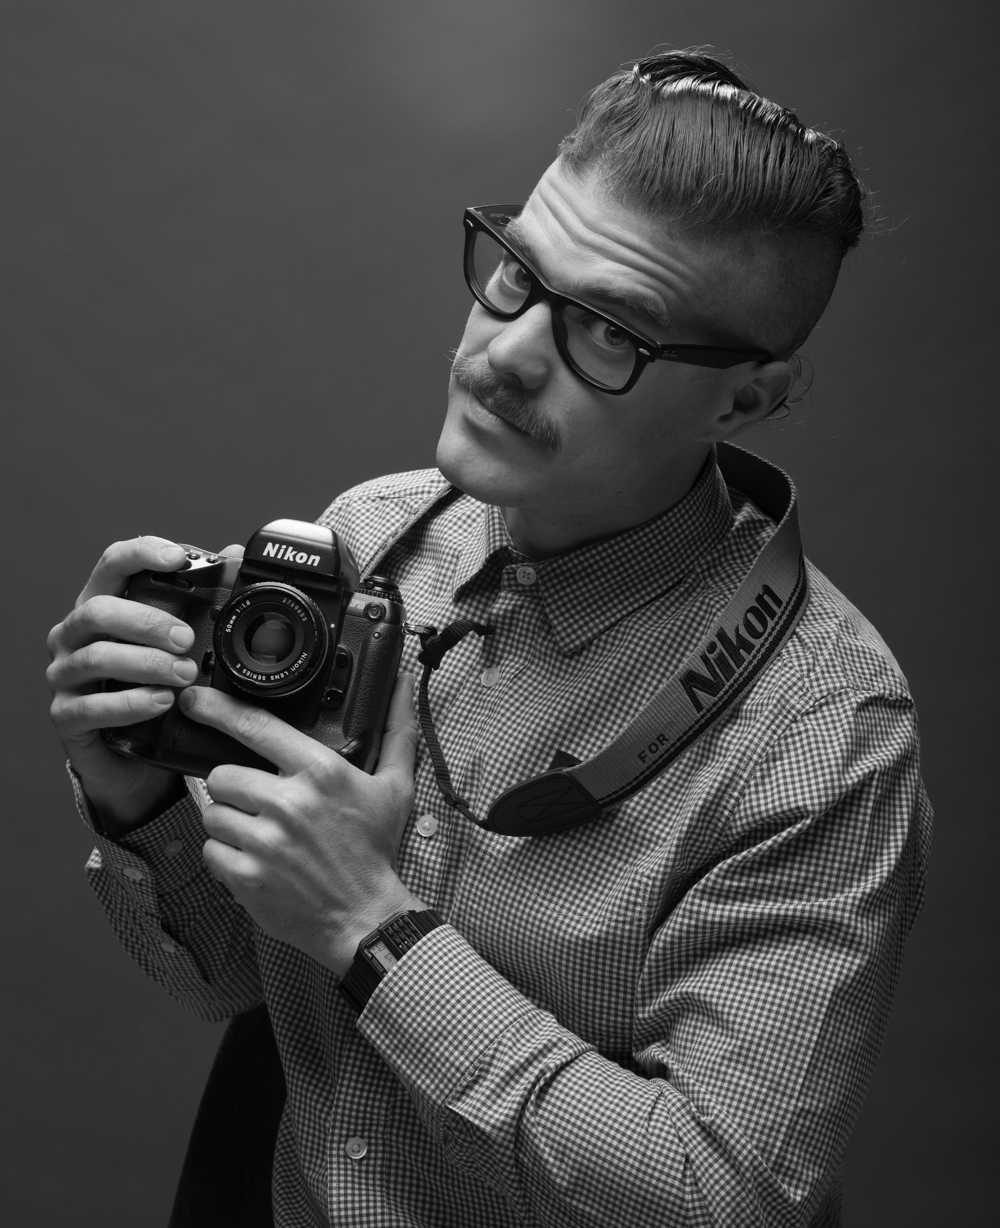 New business, new portrait. Check it out, I'm a professional over at  dylandaviesphoto.com